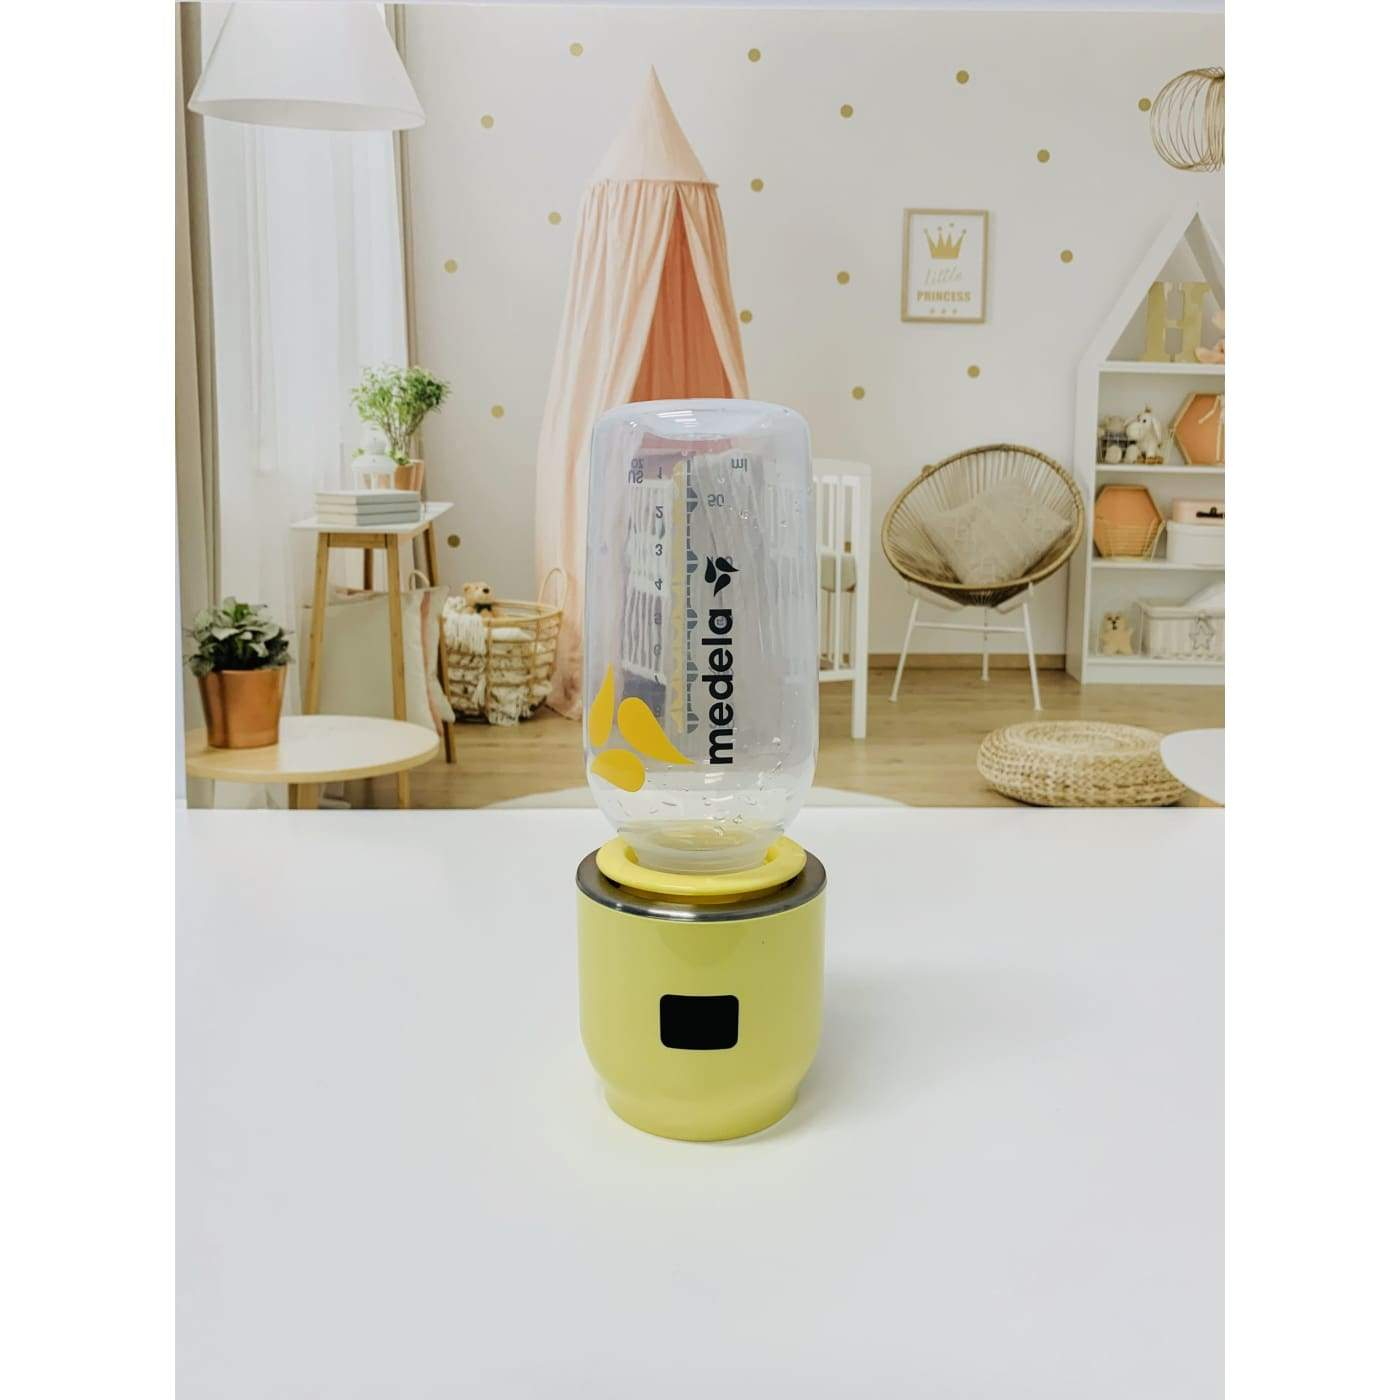 Jiffi Medela/Dr Browns/Pigeon Narrow Neck Adaptor - Yellow - Yellow - NURSING & FEEDING - BOTTLE ACCESSORIES